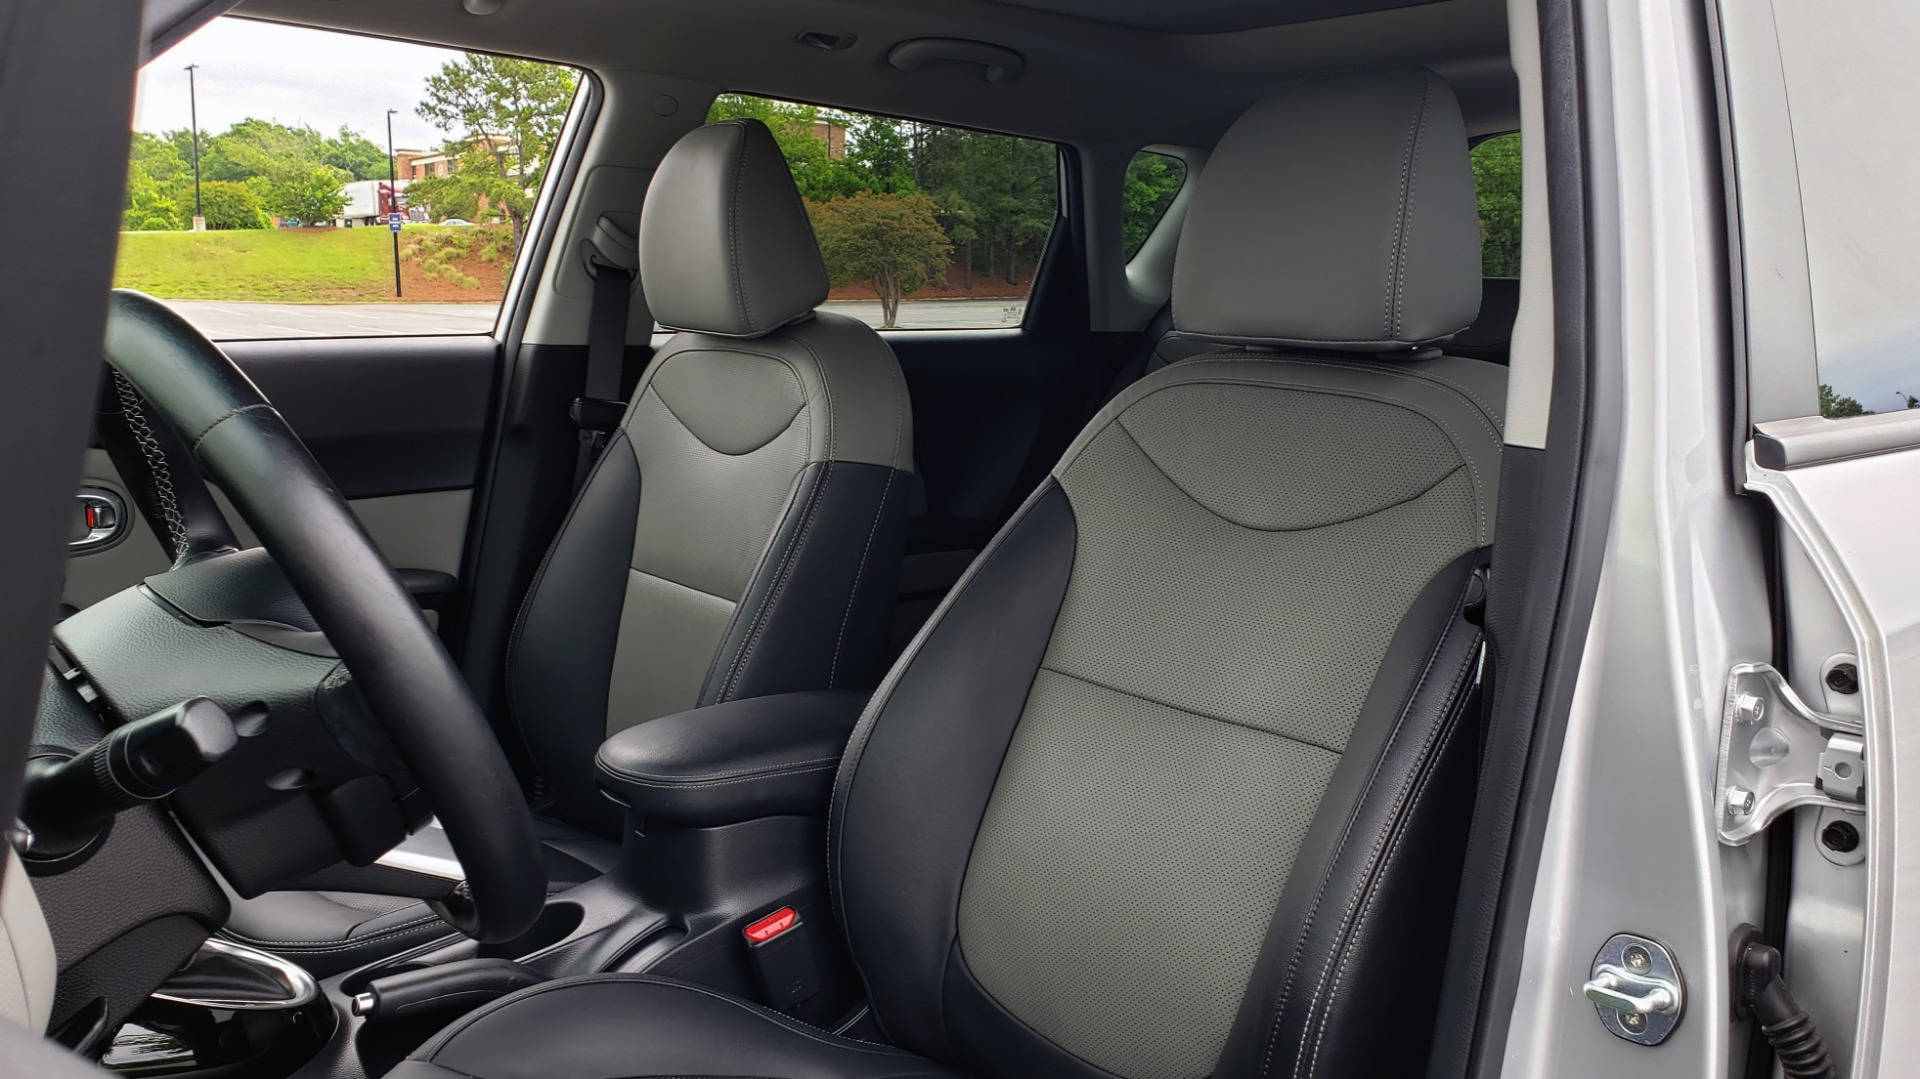 Used 2017 Kia SOUL PLUS / NAV / SUNROOF / LEATHER / HTD STS / REARVIEW for sale $16,995 at Formula Imports in Charlotte NC 28227 34